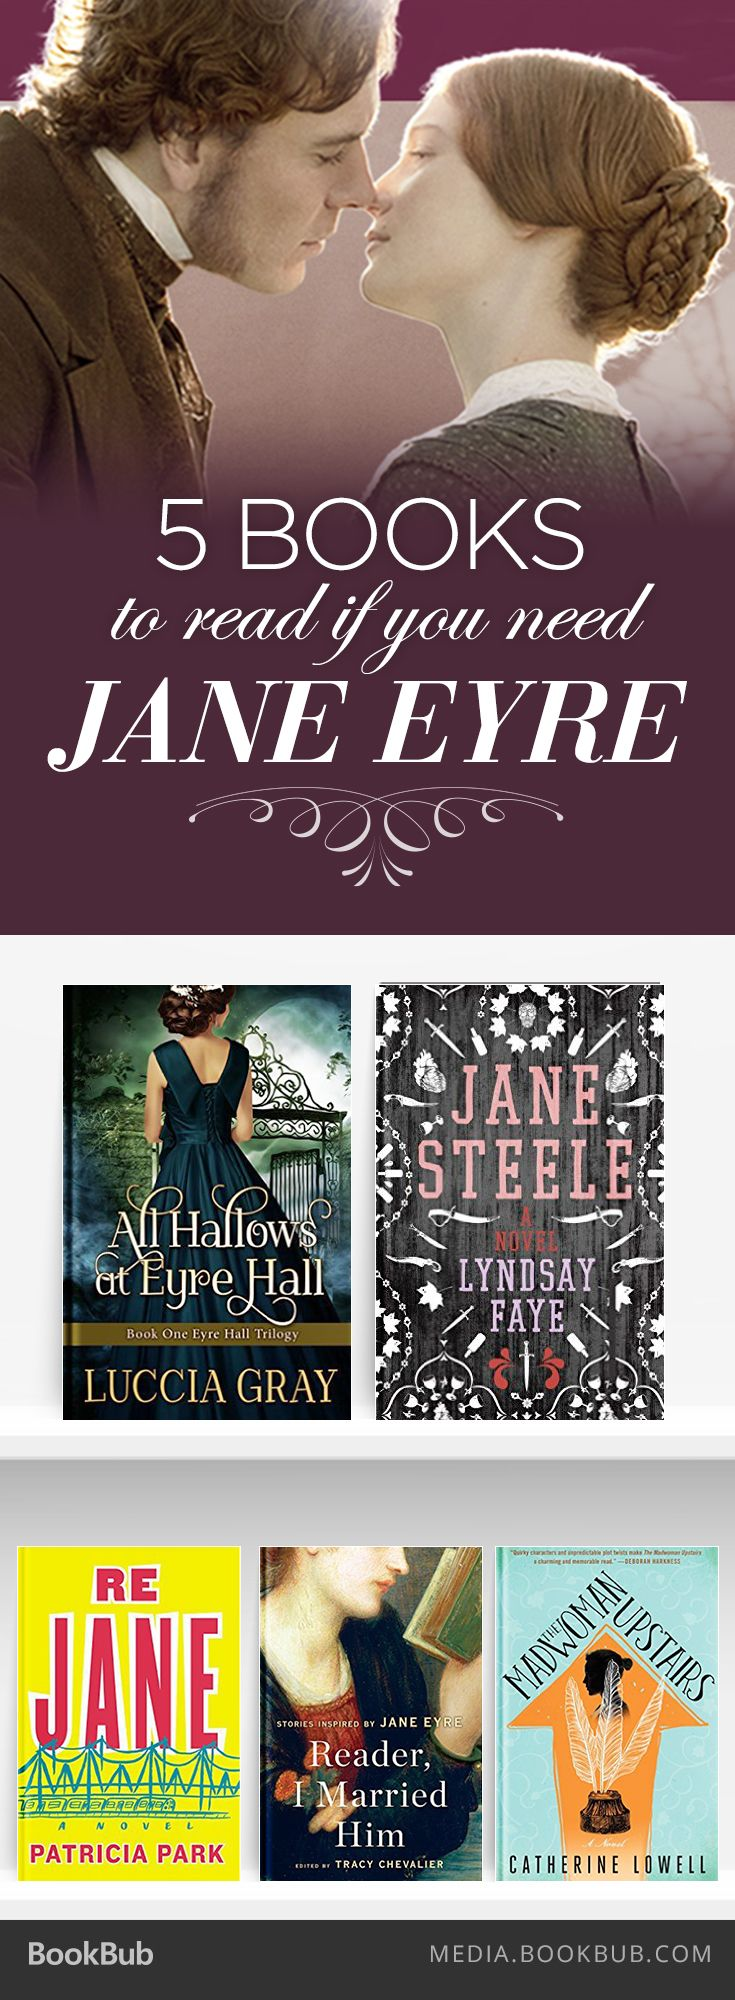 a book report on charlotte brontes novel jane eyre Buy jane eyre by charlotte bronte (isbn: 9781503278196) from amazon's book store everyday low prices and free delivery on eligible orders.